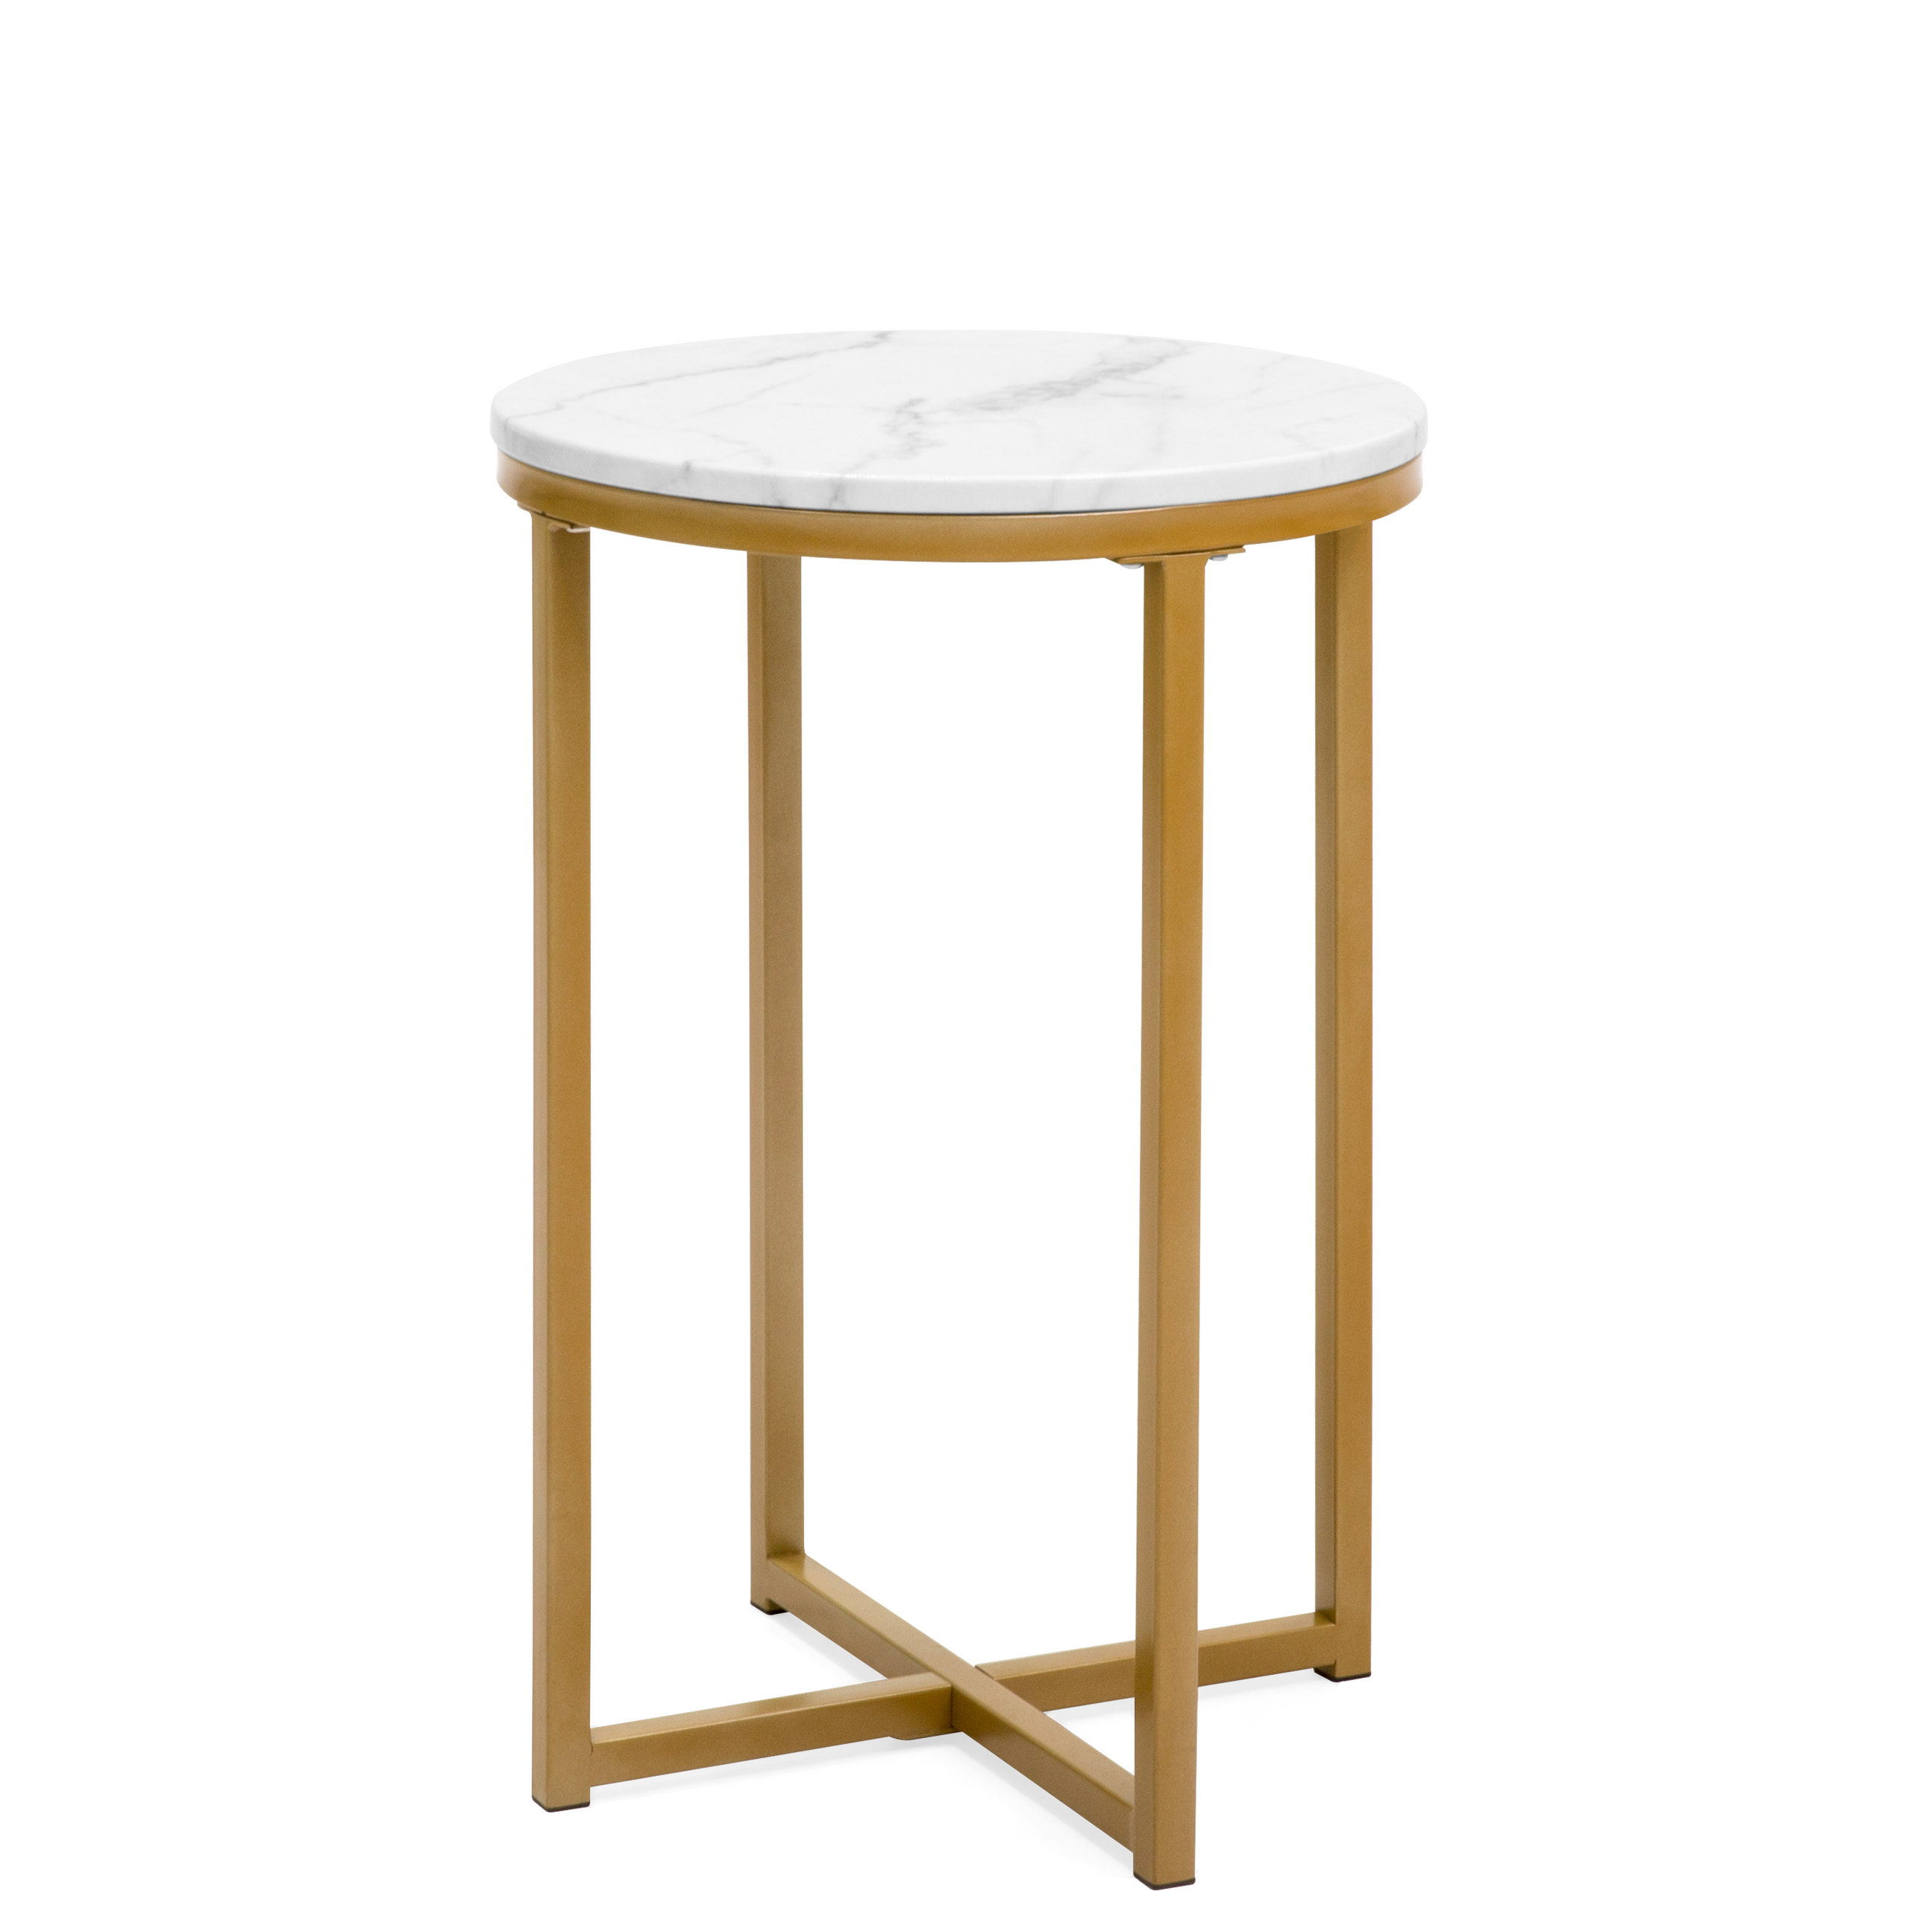 best choice products modern living room round side end accent gold marble table coffee nightstand metal frame faux top white bunnings umbrella french ikea kitchen and chairs large